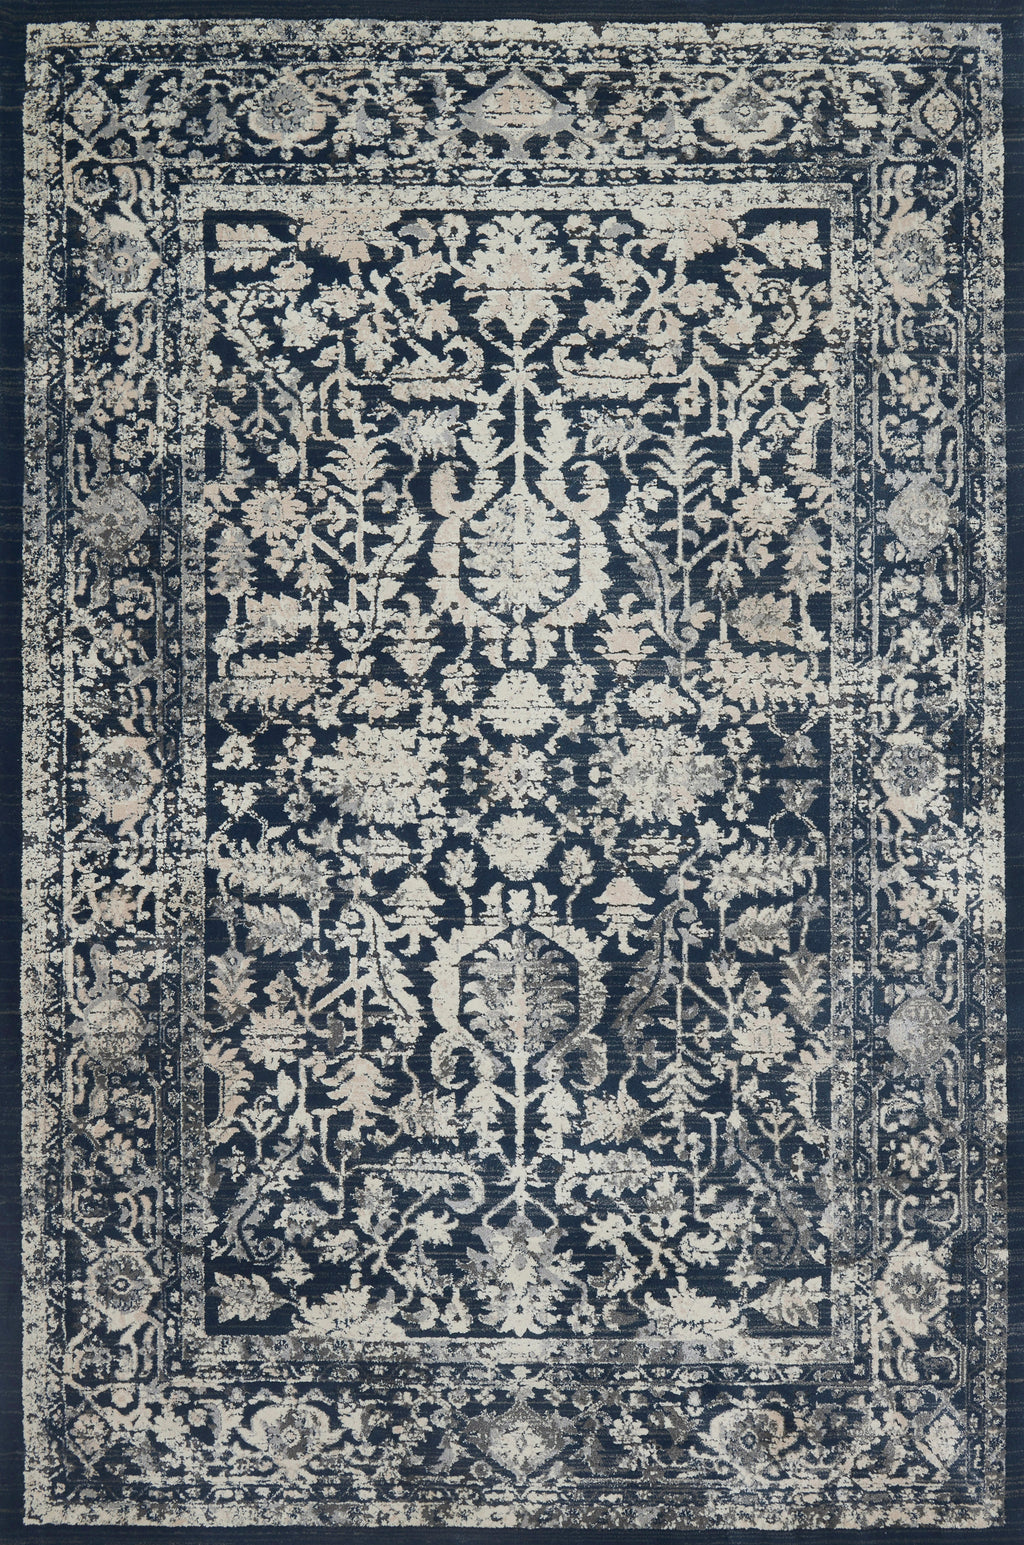 EVERLY Collection Wool/Viscose Rug in INDIGO / INDIGO Blue Accent Power-Loomed Wool/Viscose